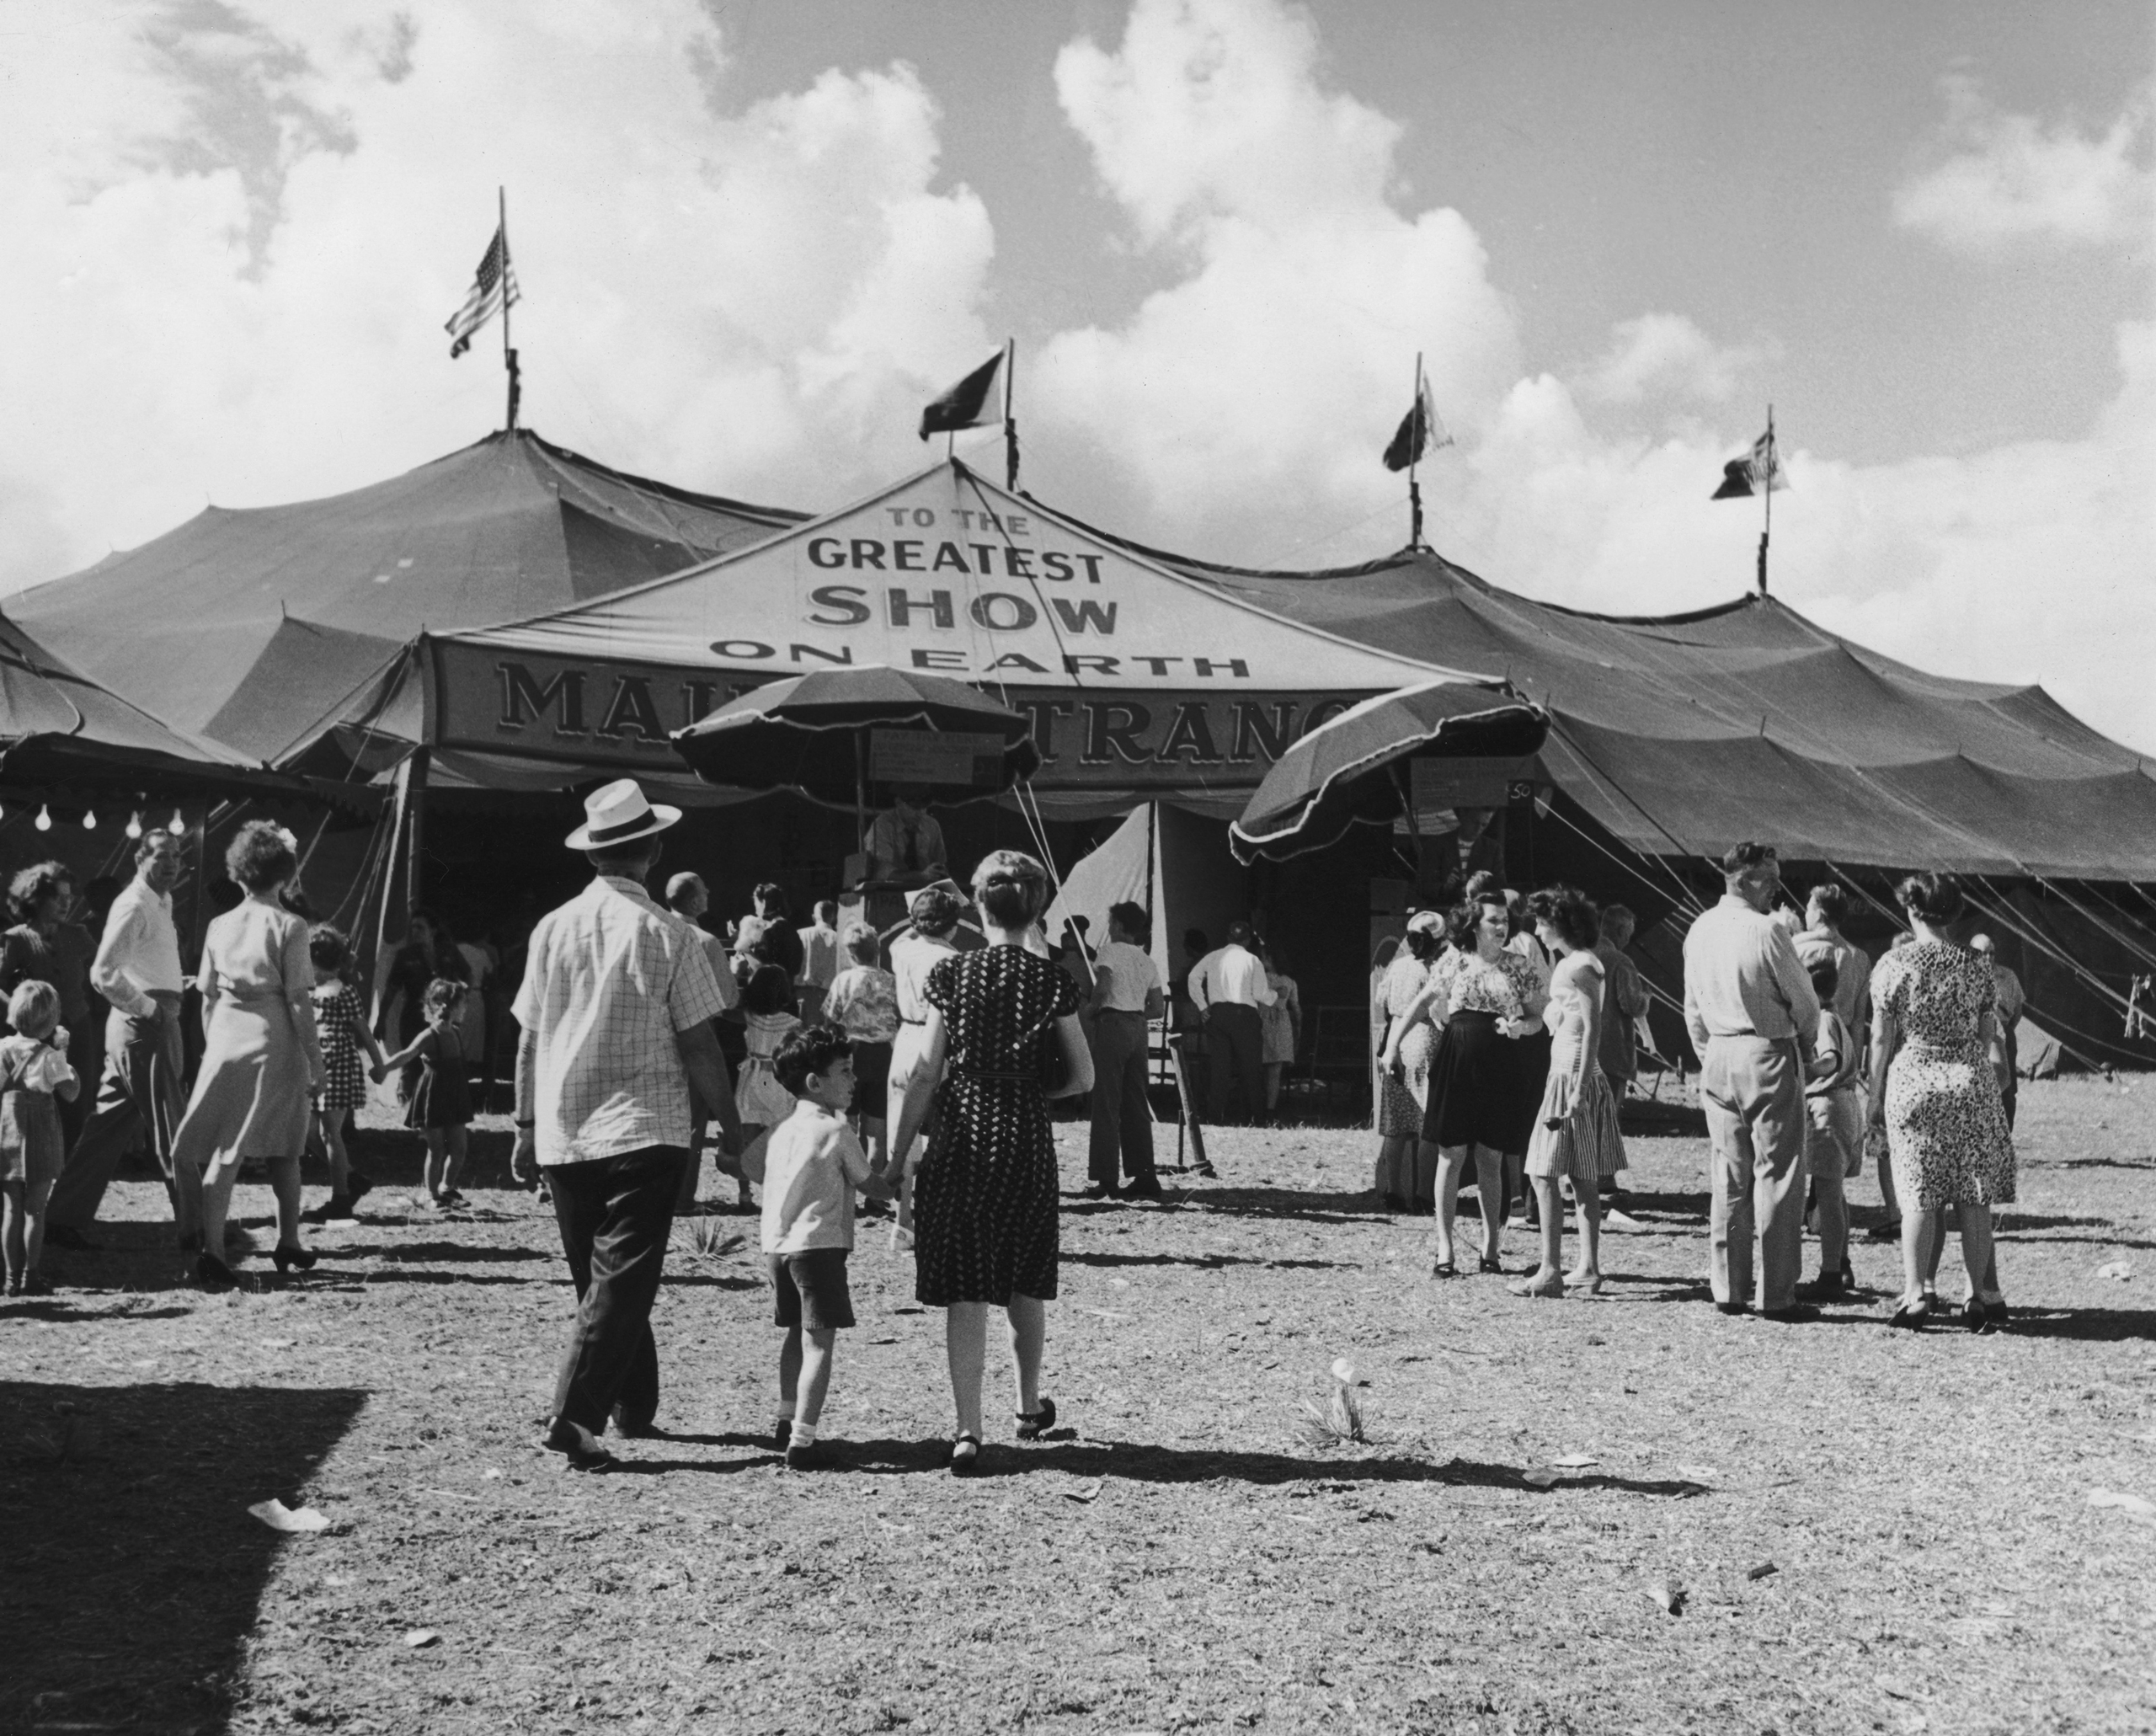 Visitors heading to the big top to see 'The Greatest Show On Earth' performance from the Ringling Bros, Barnum & Bailey circus, circa 1950.